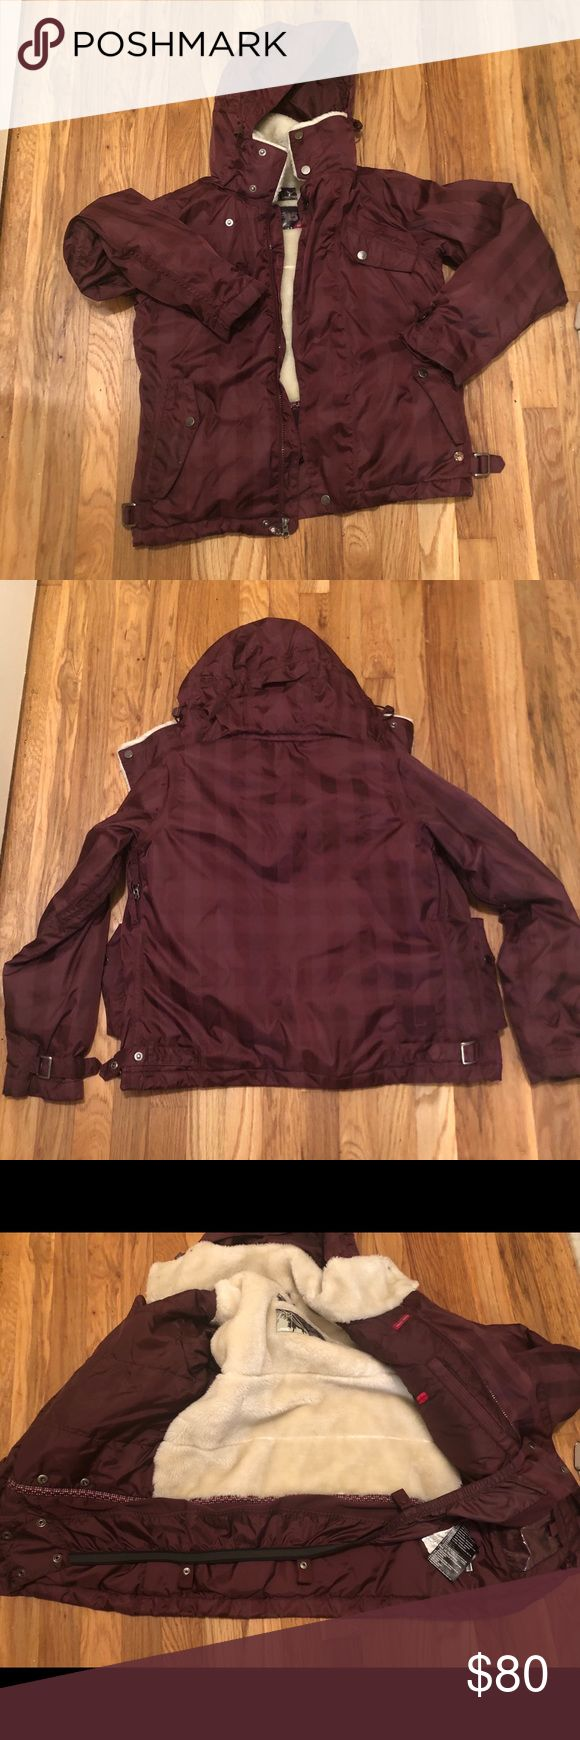 Burton Snowboarding Jacket Burton burgundy colored snowboarding jacket. Sherpa lined. Removable hood, has zippered vents for when you get hot on the slopes, can be attached to ski pants on the bottom. New without tags. Burton Jackets & Coats